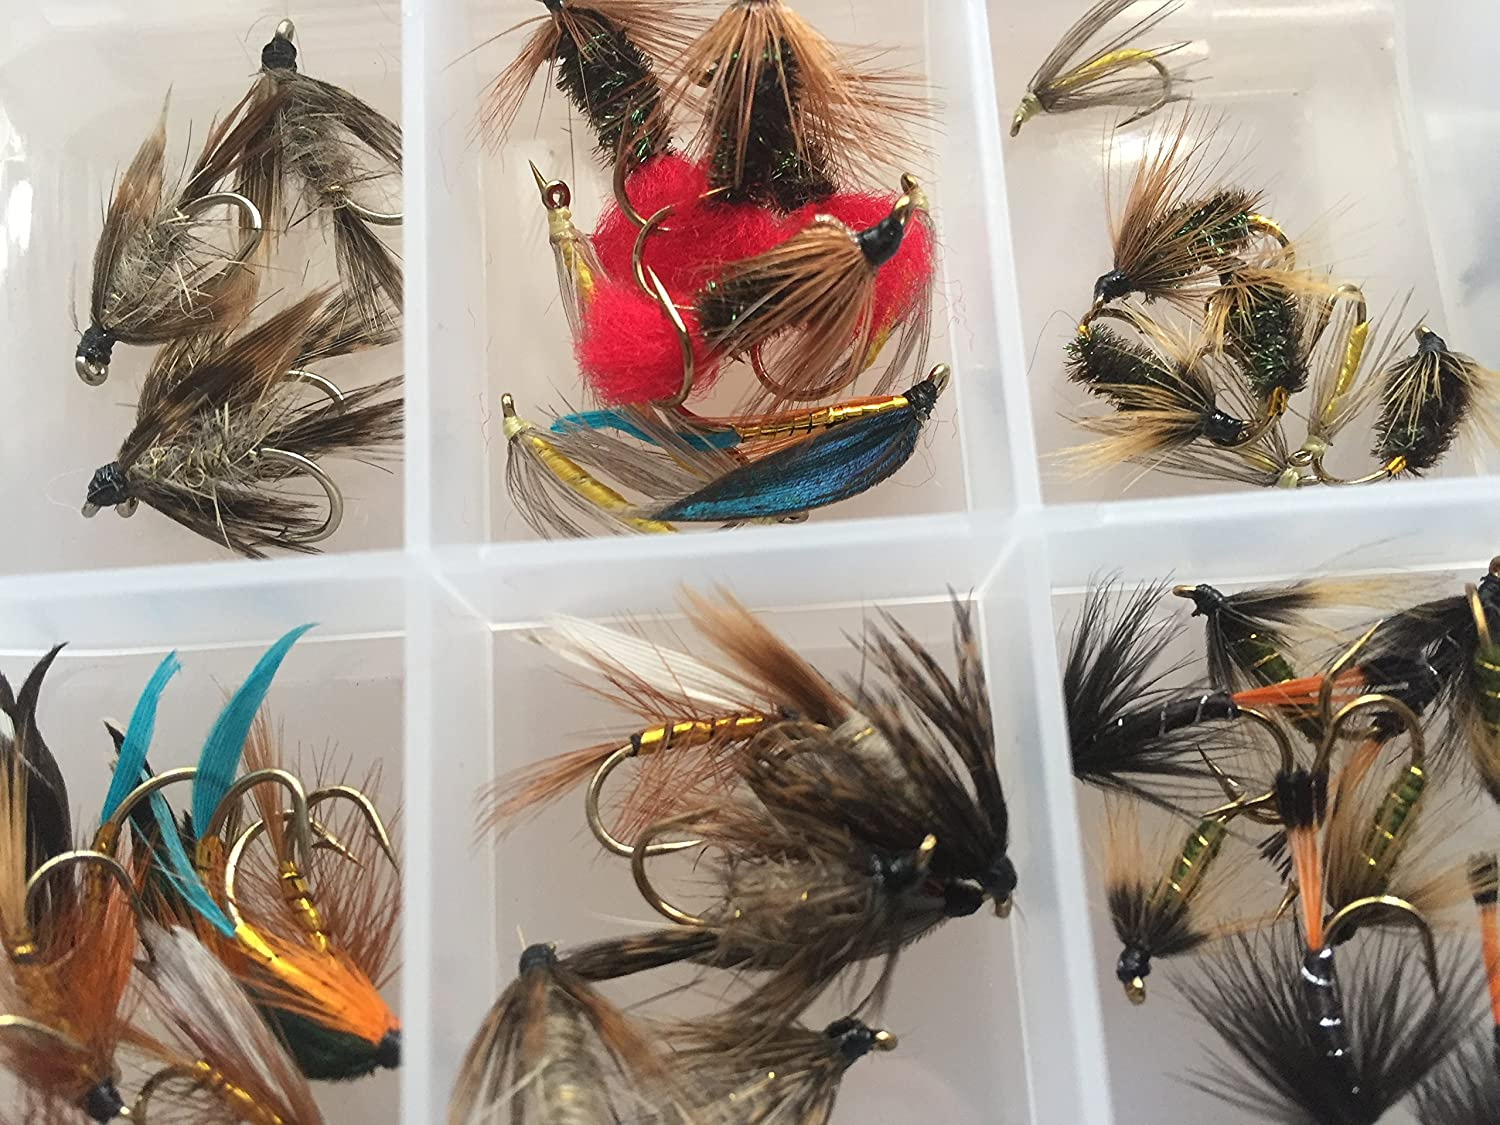 BestCity 50 plus Fishing Flies WET Selection FLY Selection TROUT more than 50 Flies in BOX PACK#9